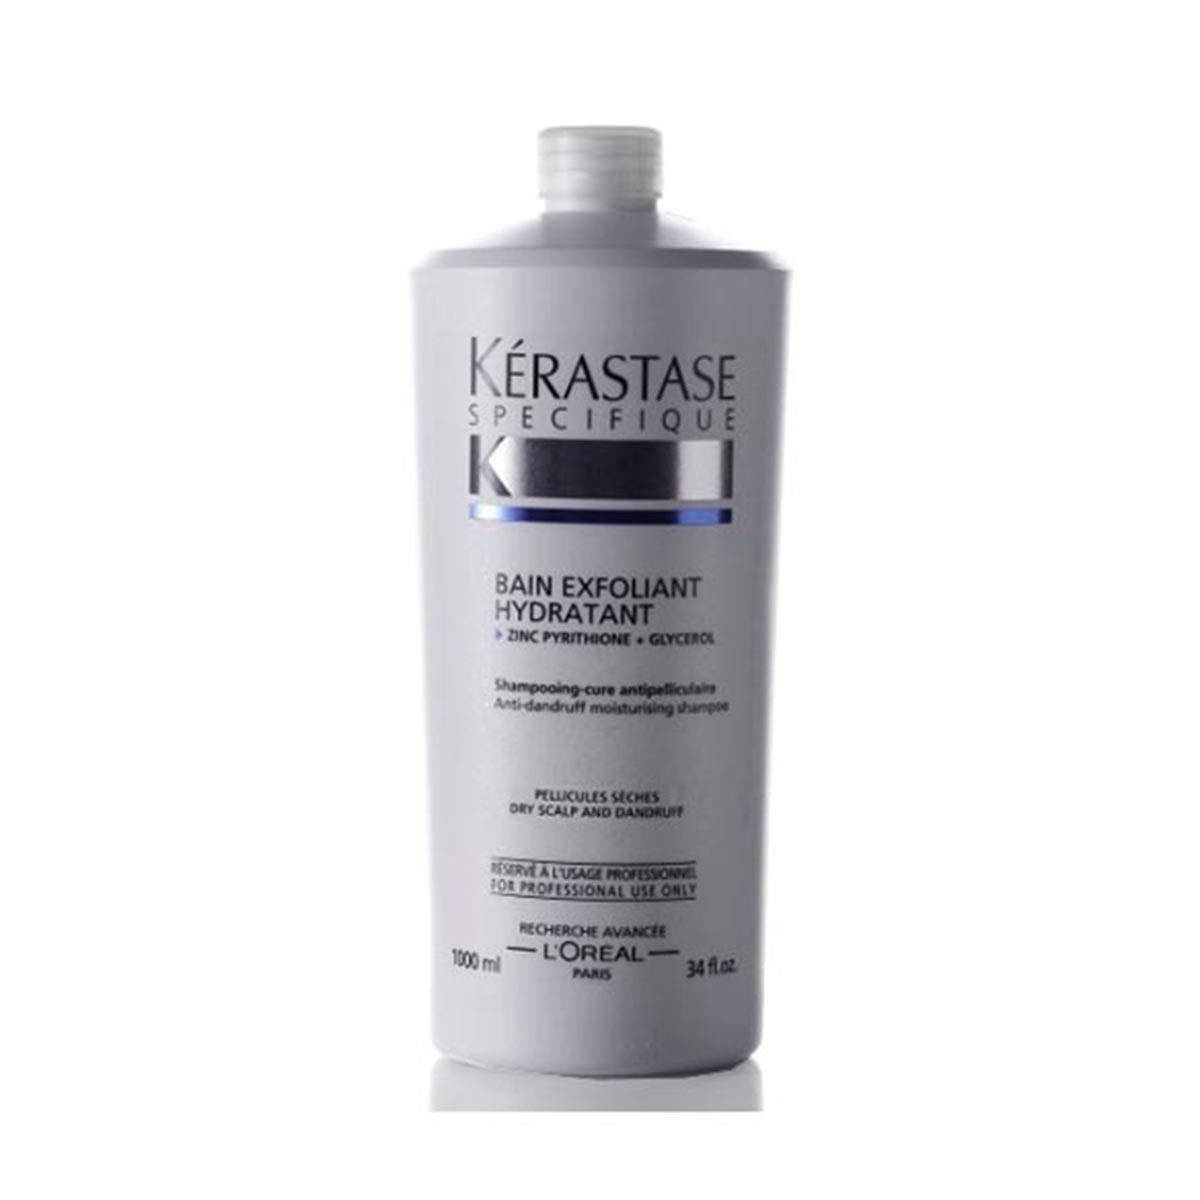 Kerastase Specifique Bain Exfoliant Hydratant 1000 ml